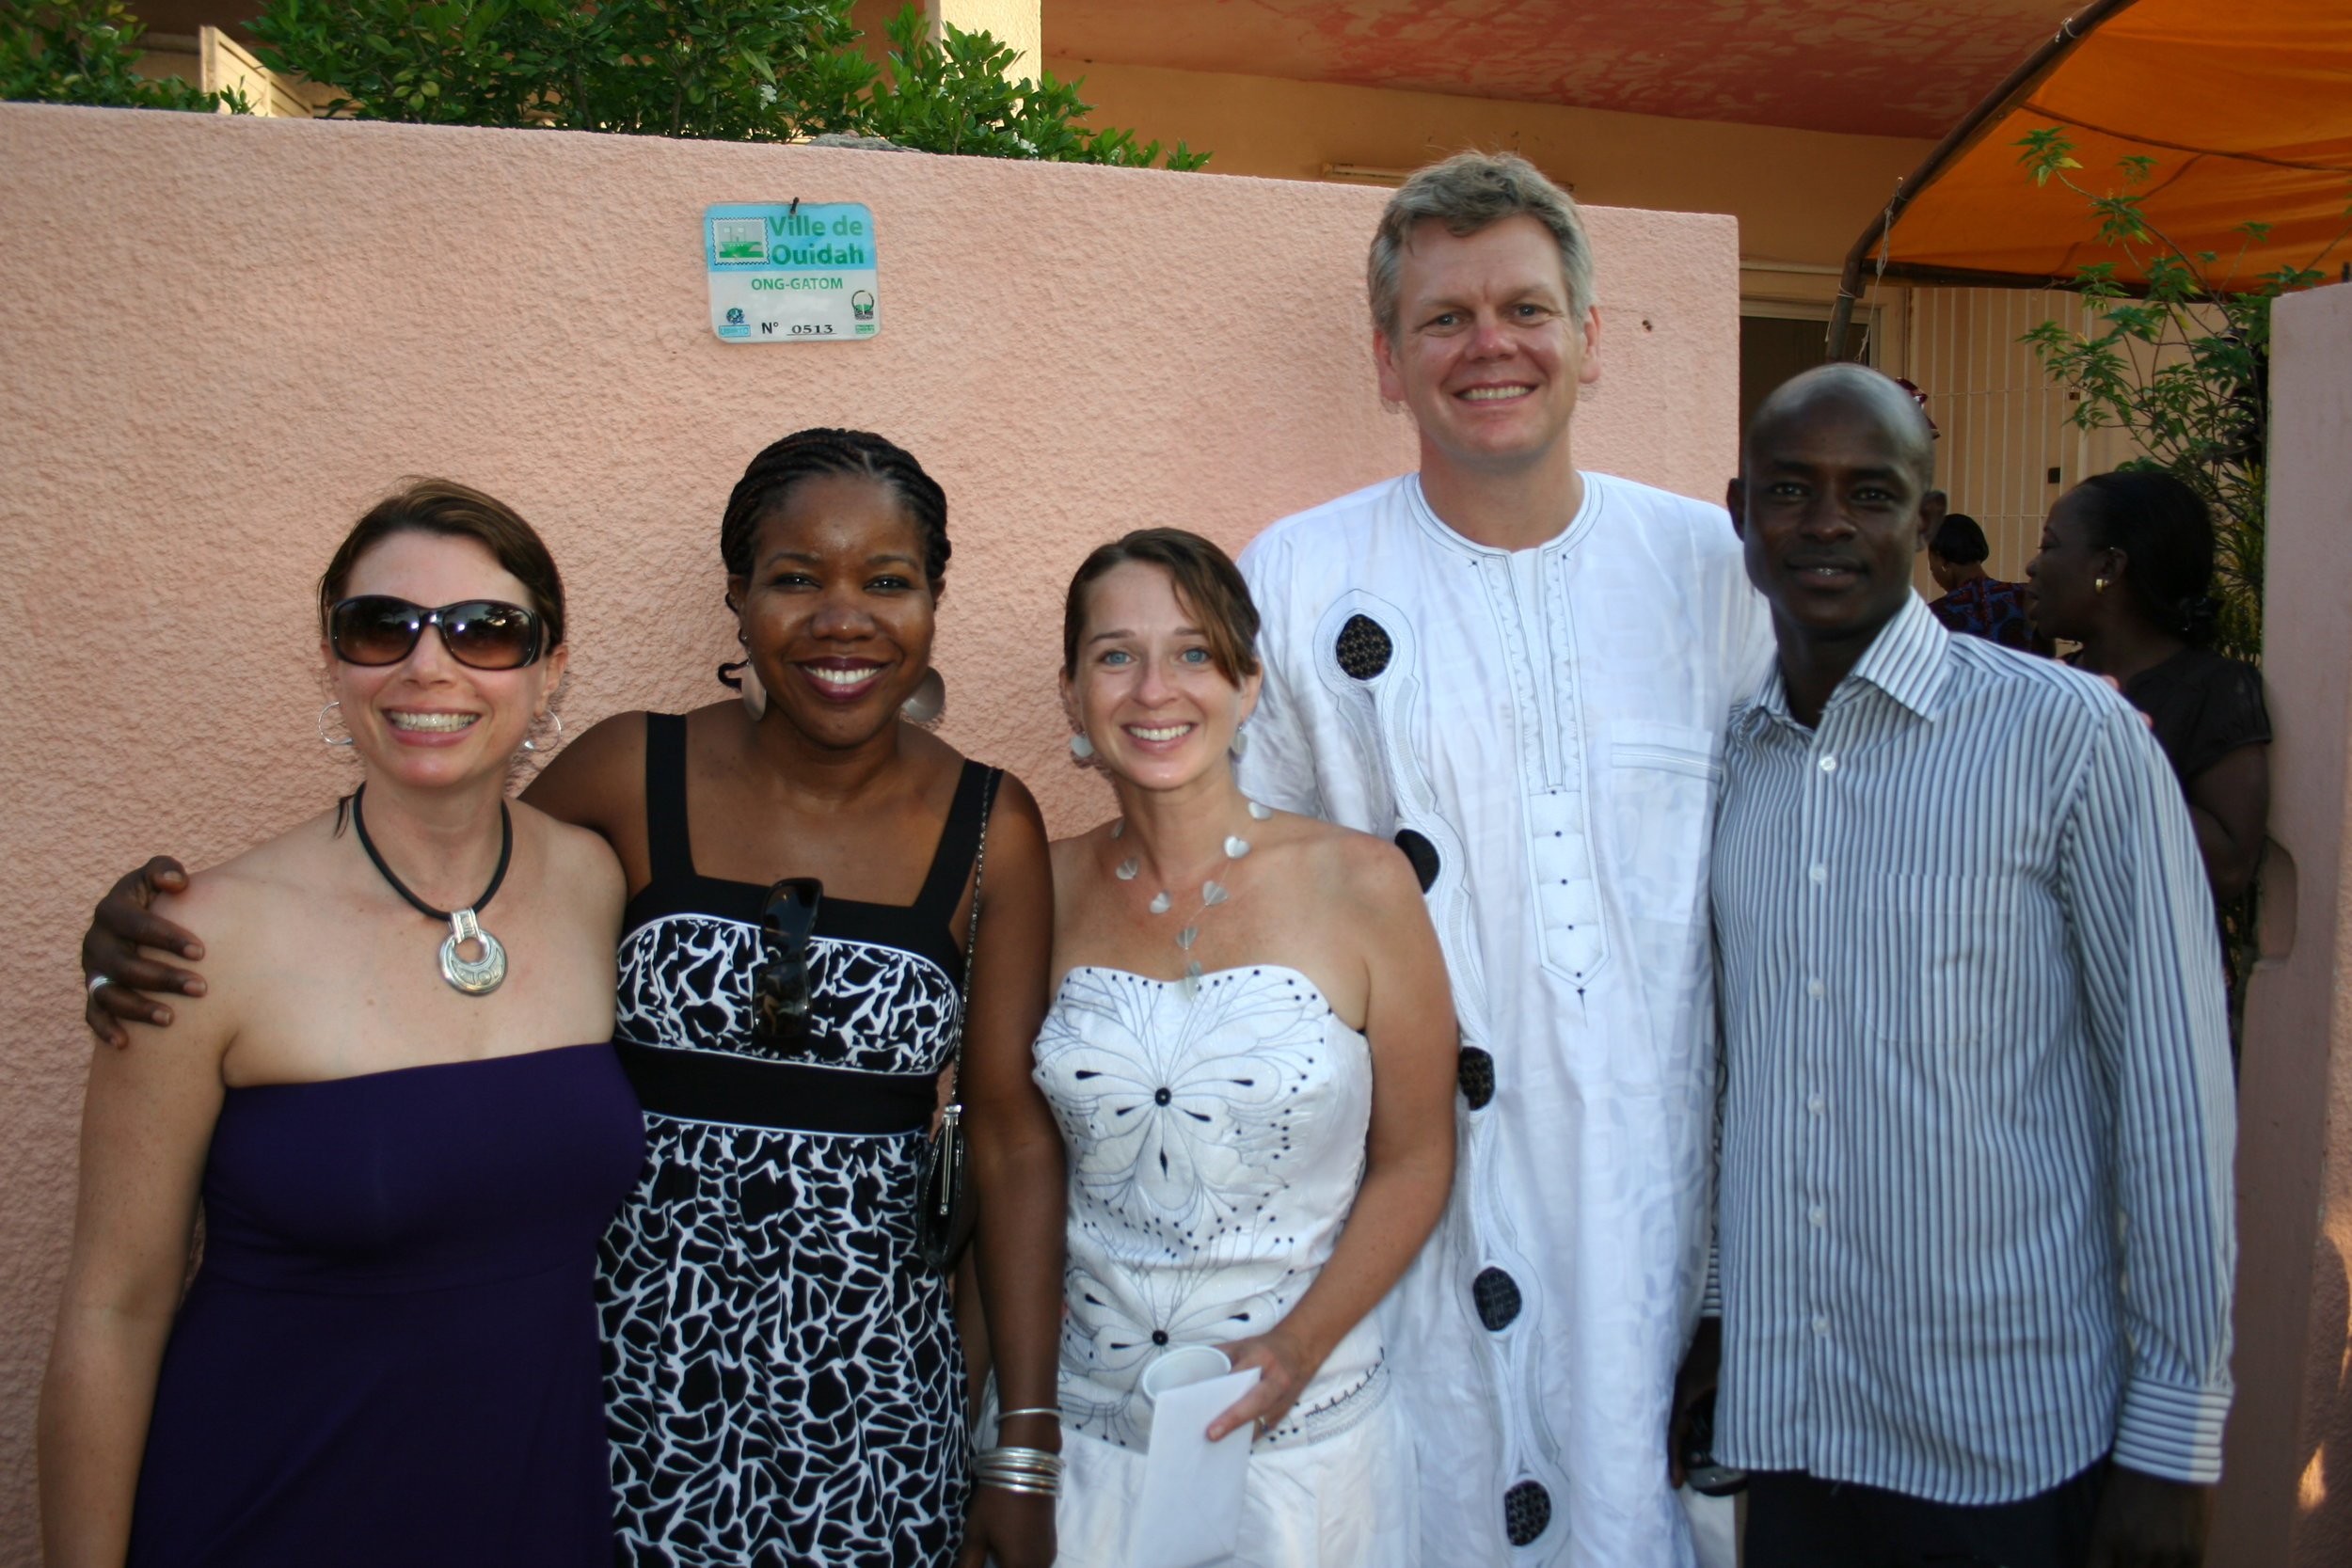 The joy of finally making it to our own wedding! Lauren, Iffy, and Abdou helped us celebrate.